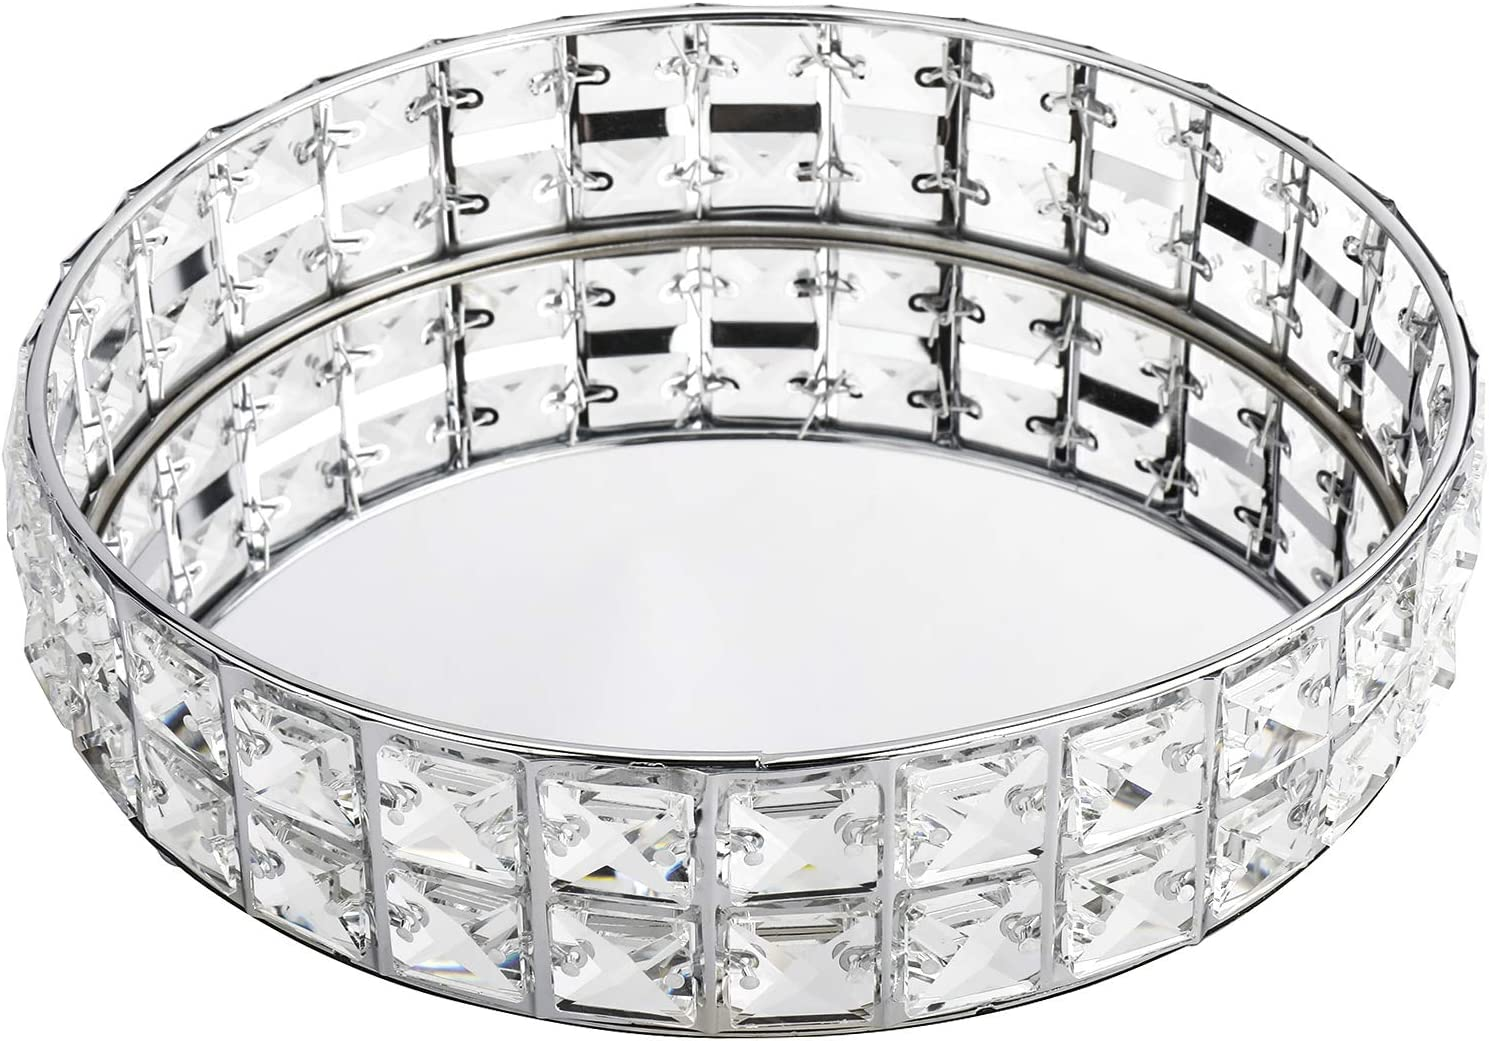 HighFree Mirrored Crystal Ranking TOP8 Ornate Max 49% OFF Decorative Bling C Tray Sparkly